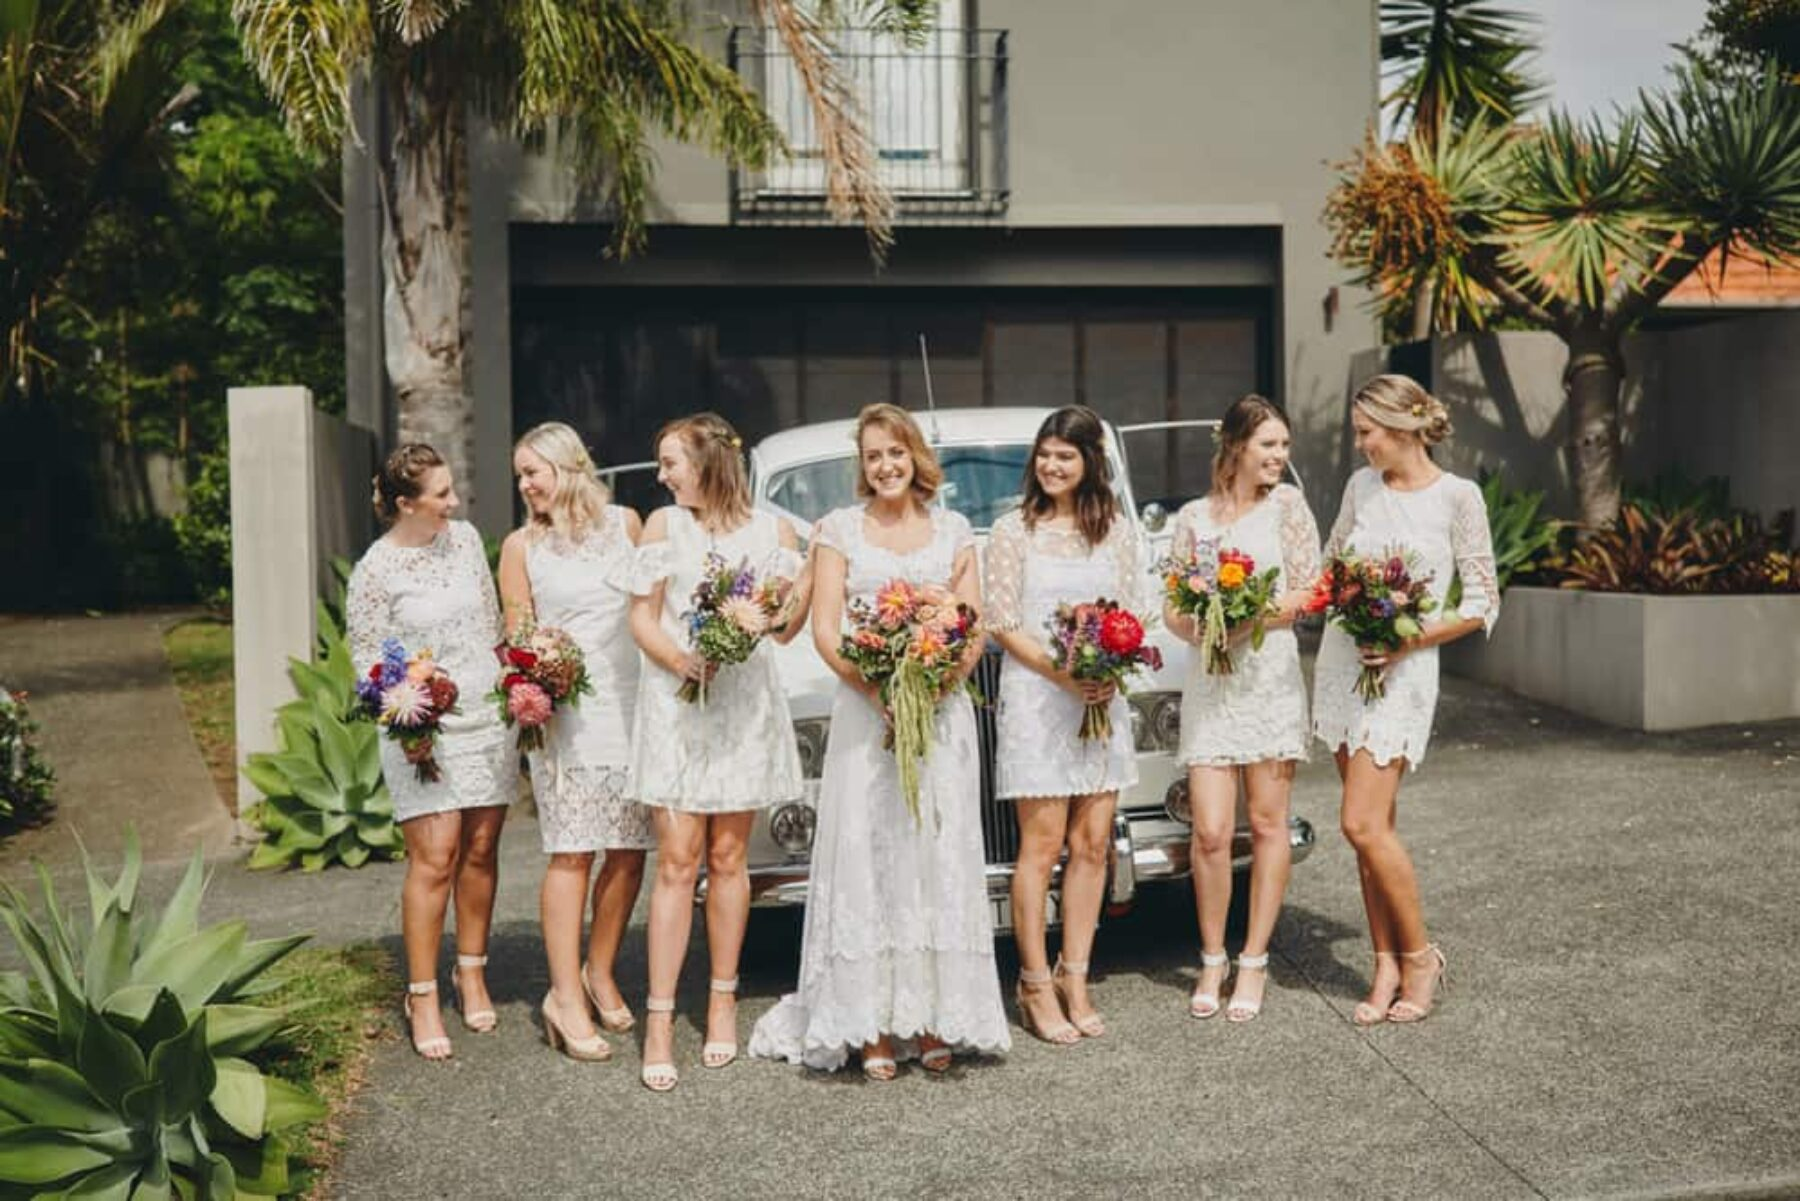 Bridesmaids in white with vibrant bouquets